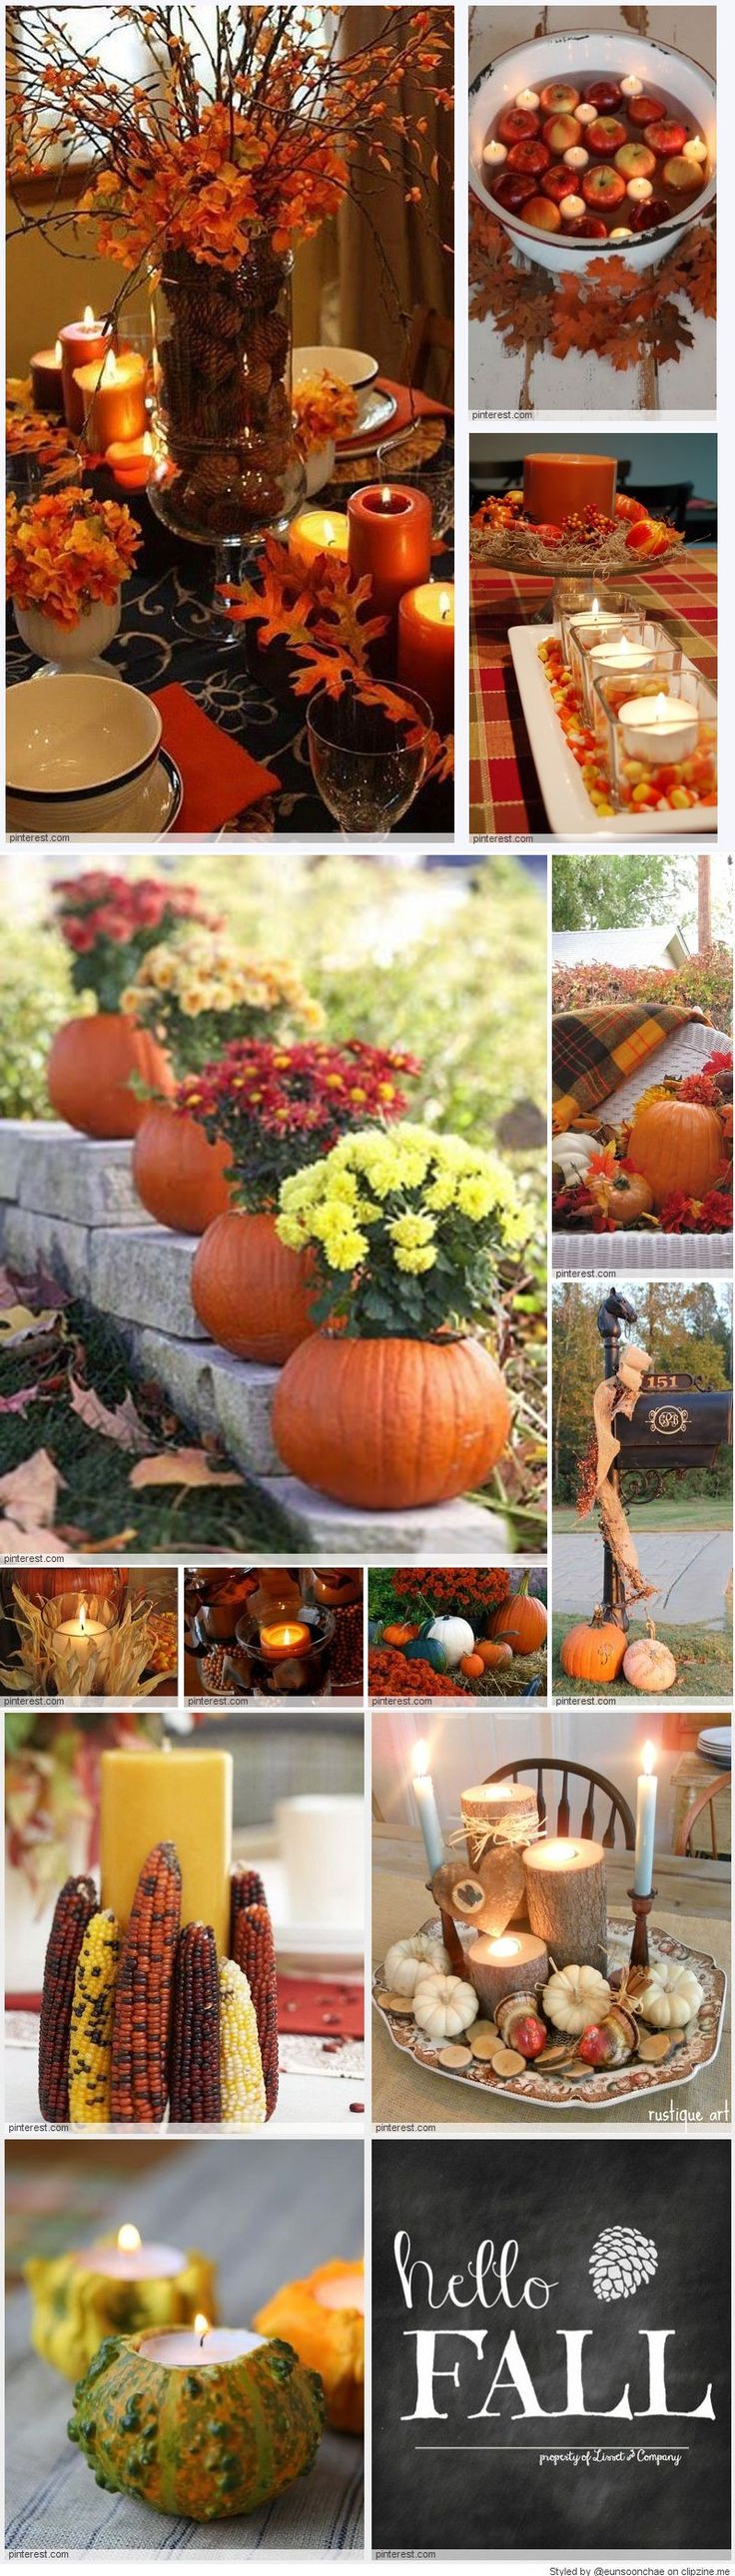 Fall Decorating Ideas: